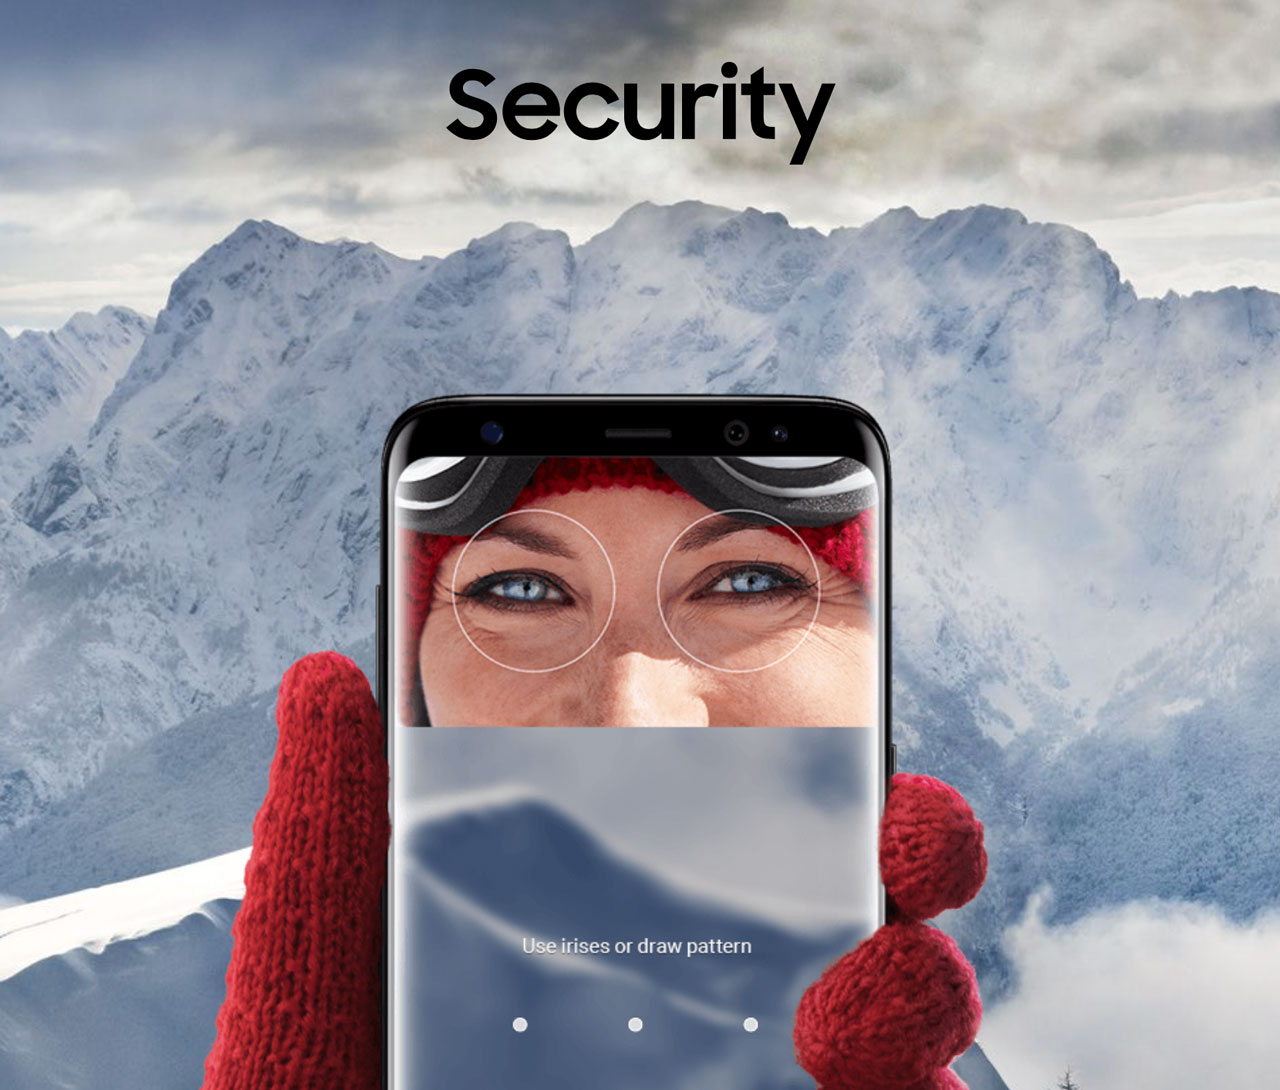 galaxy-s8-security-iris-scanning